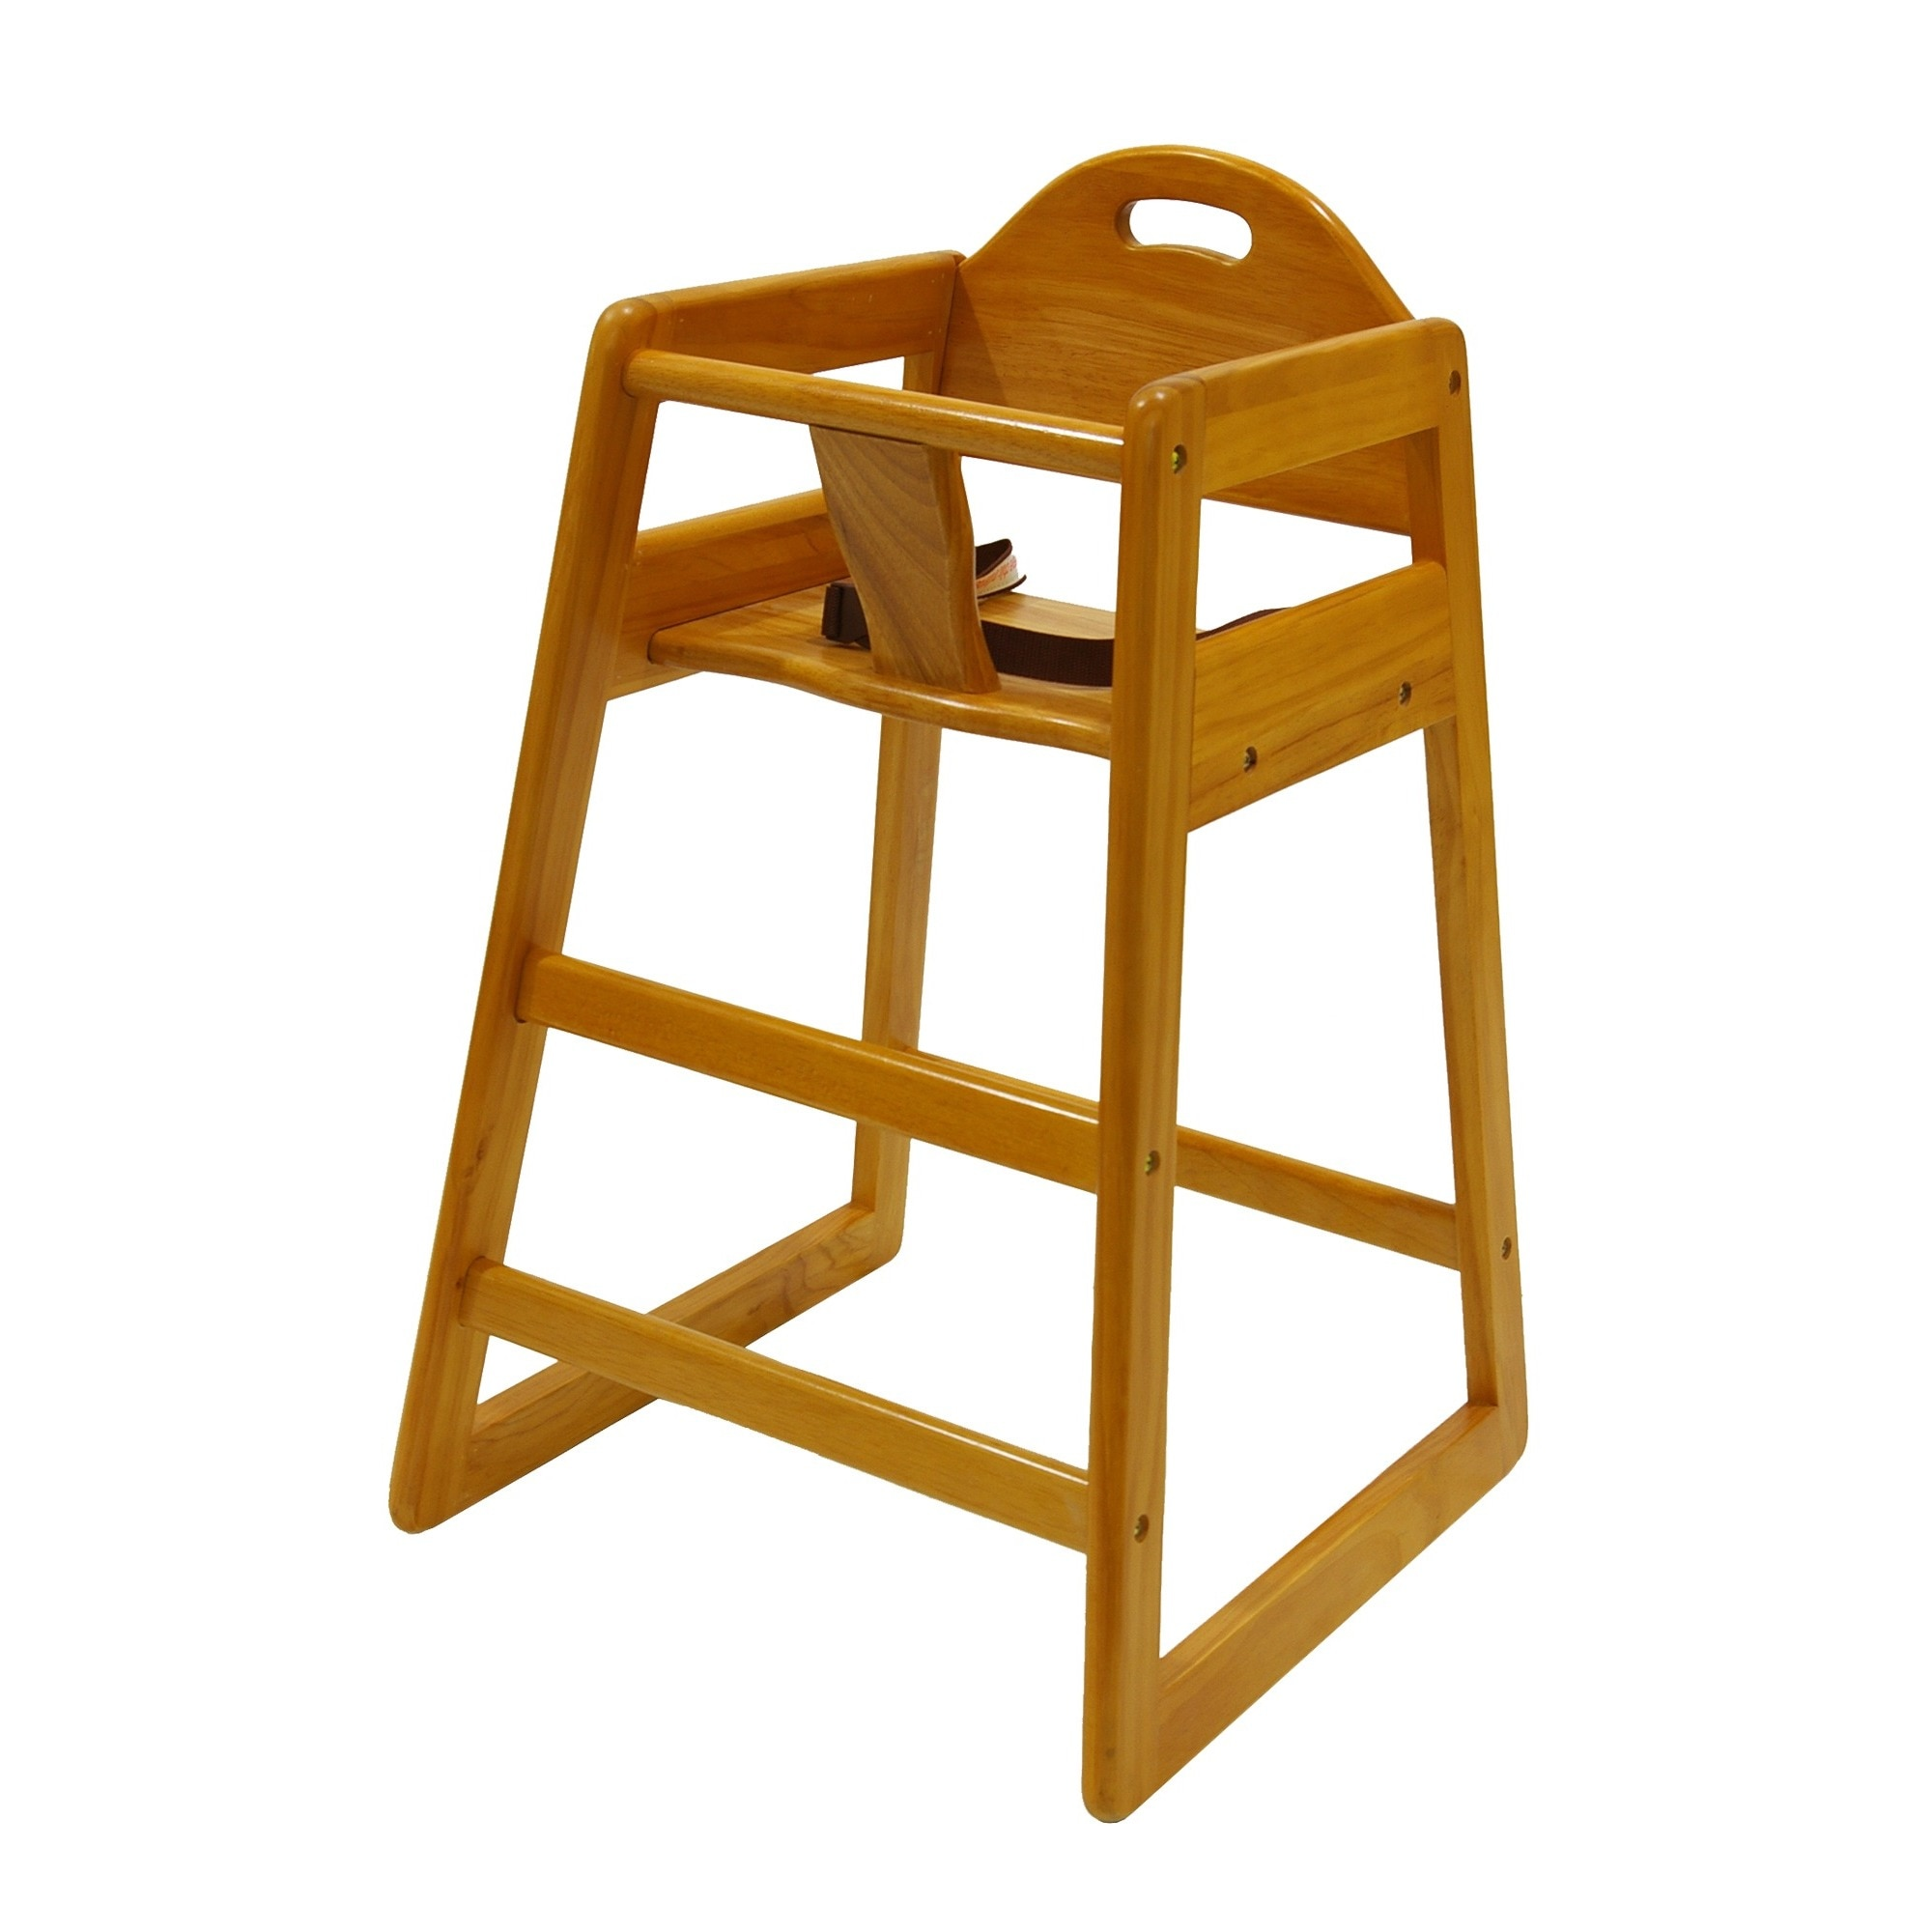 Wooden High Chairs For Babies Details About La Baby Stackable Wooden High Chair